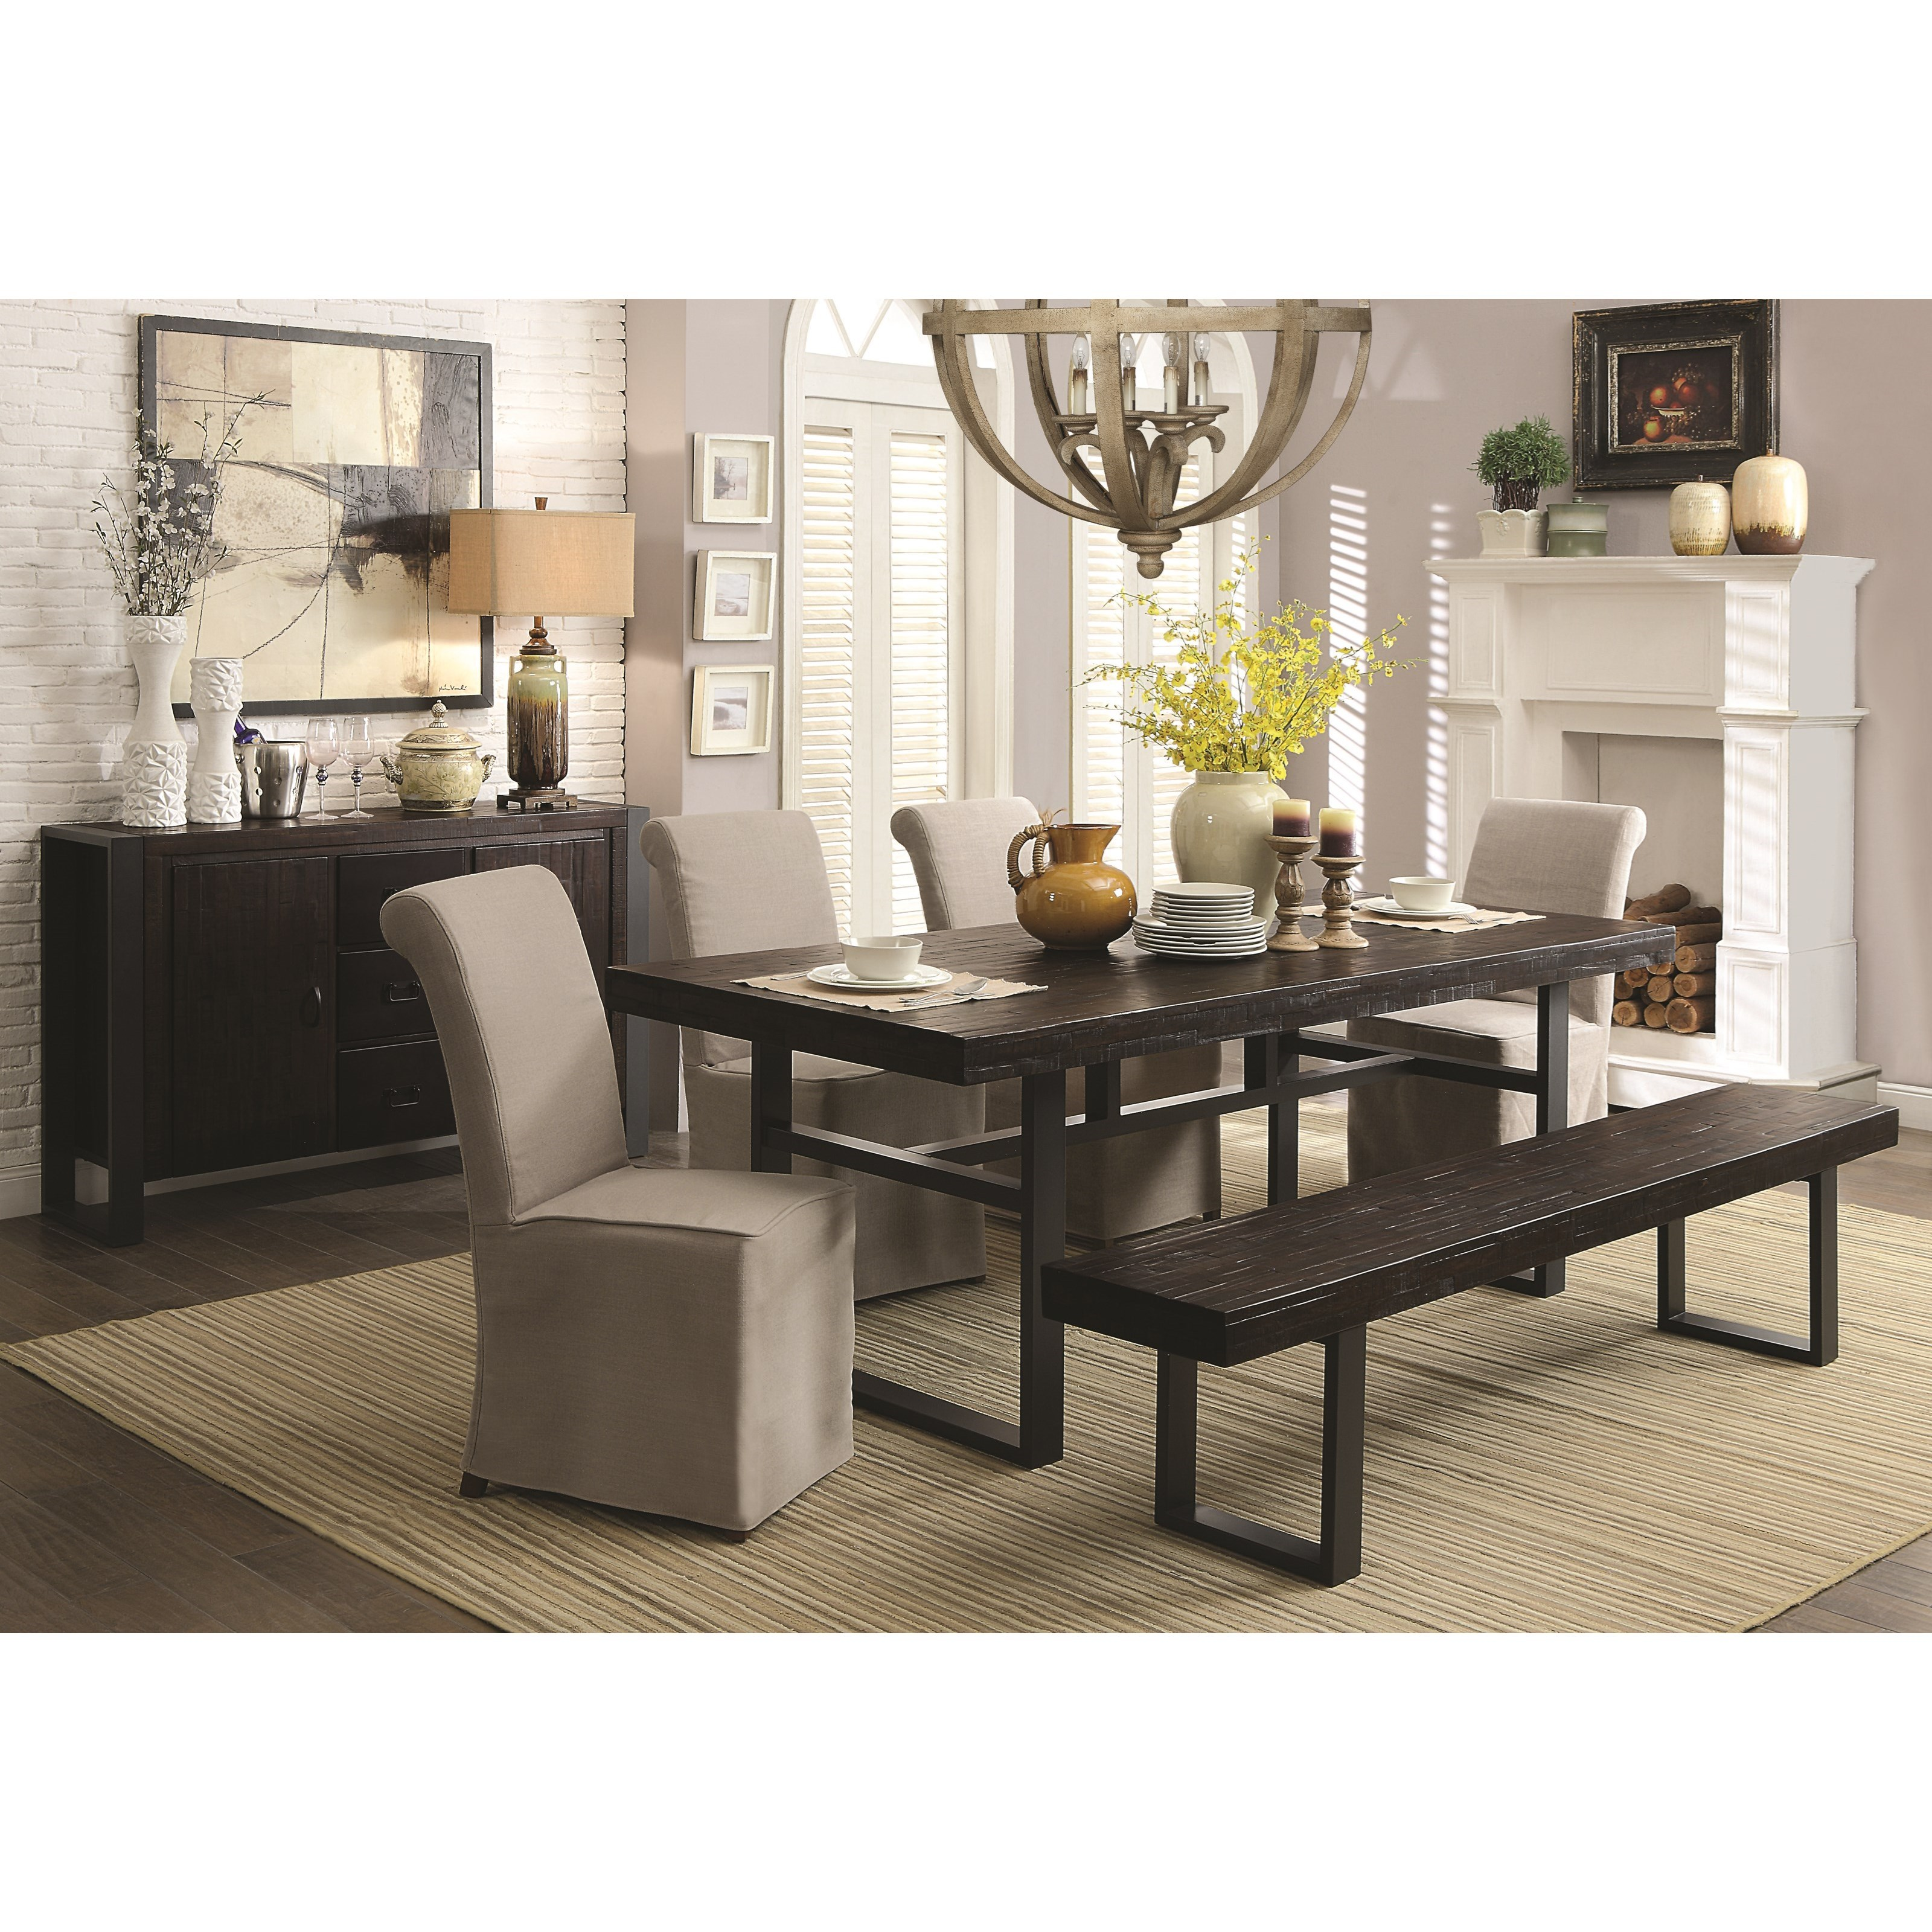 Coaster Keller Casual Dining Room Group   Item Number: 1069 Dining Room  Group 1